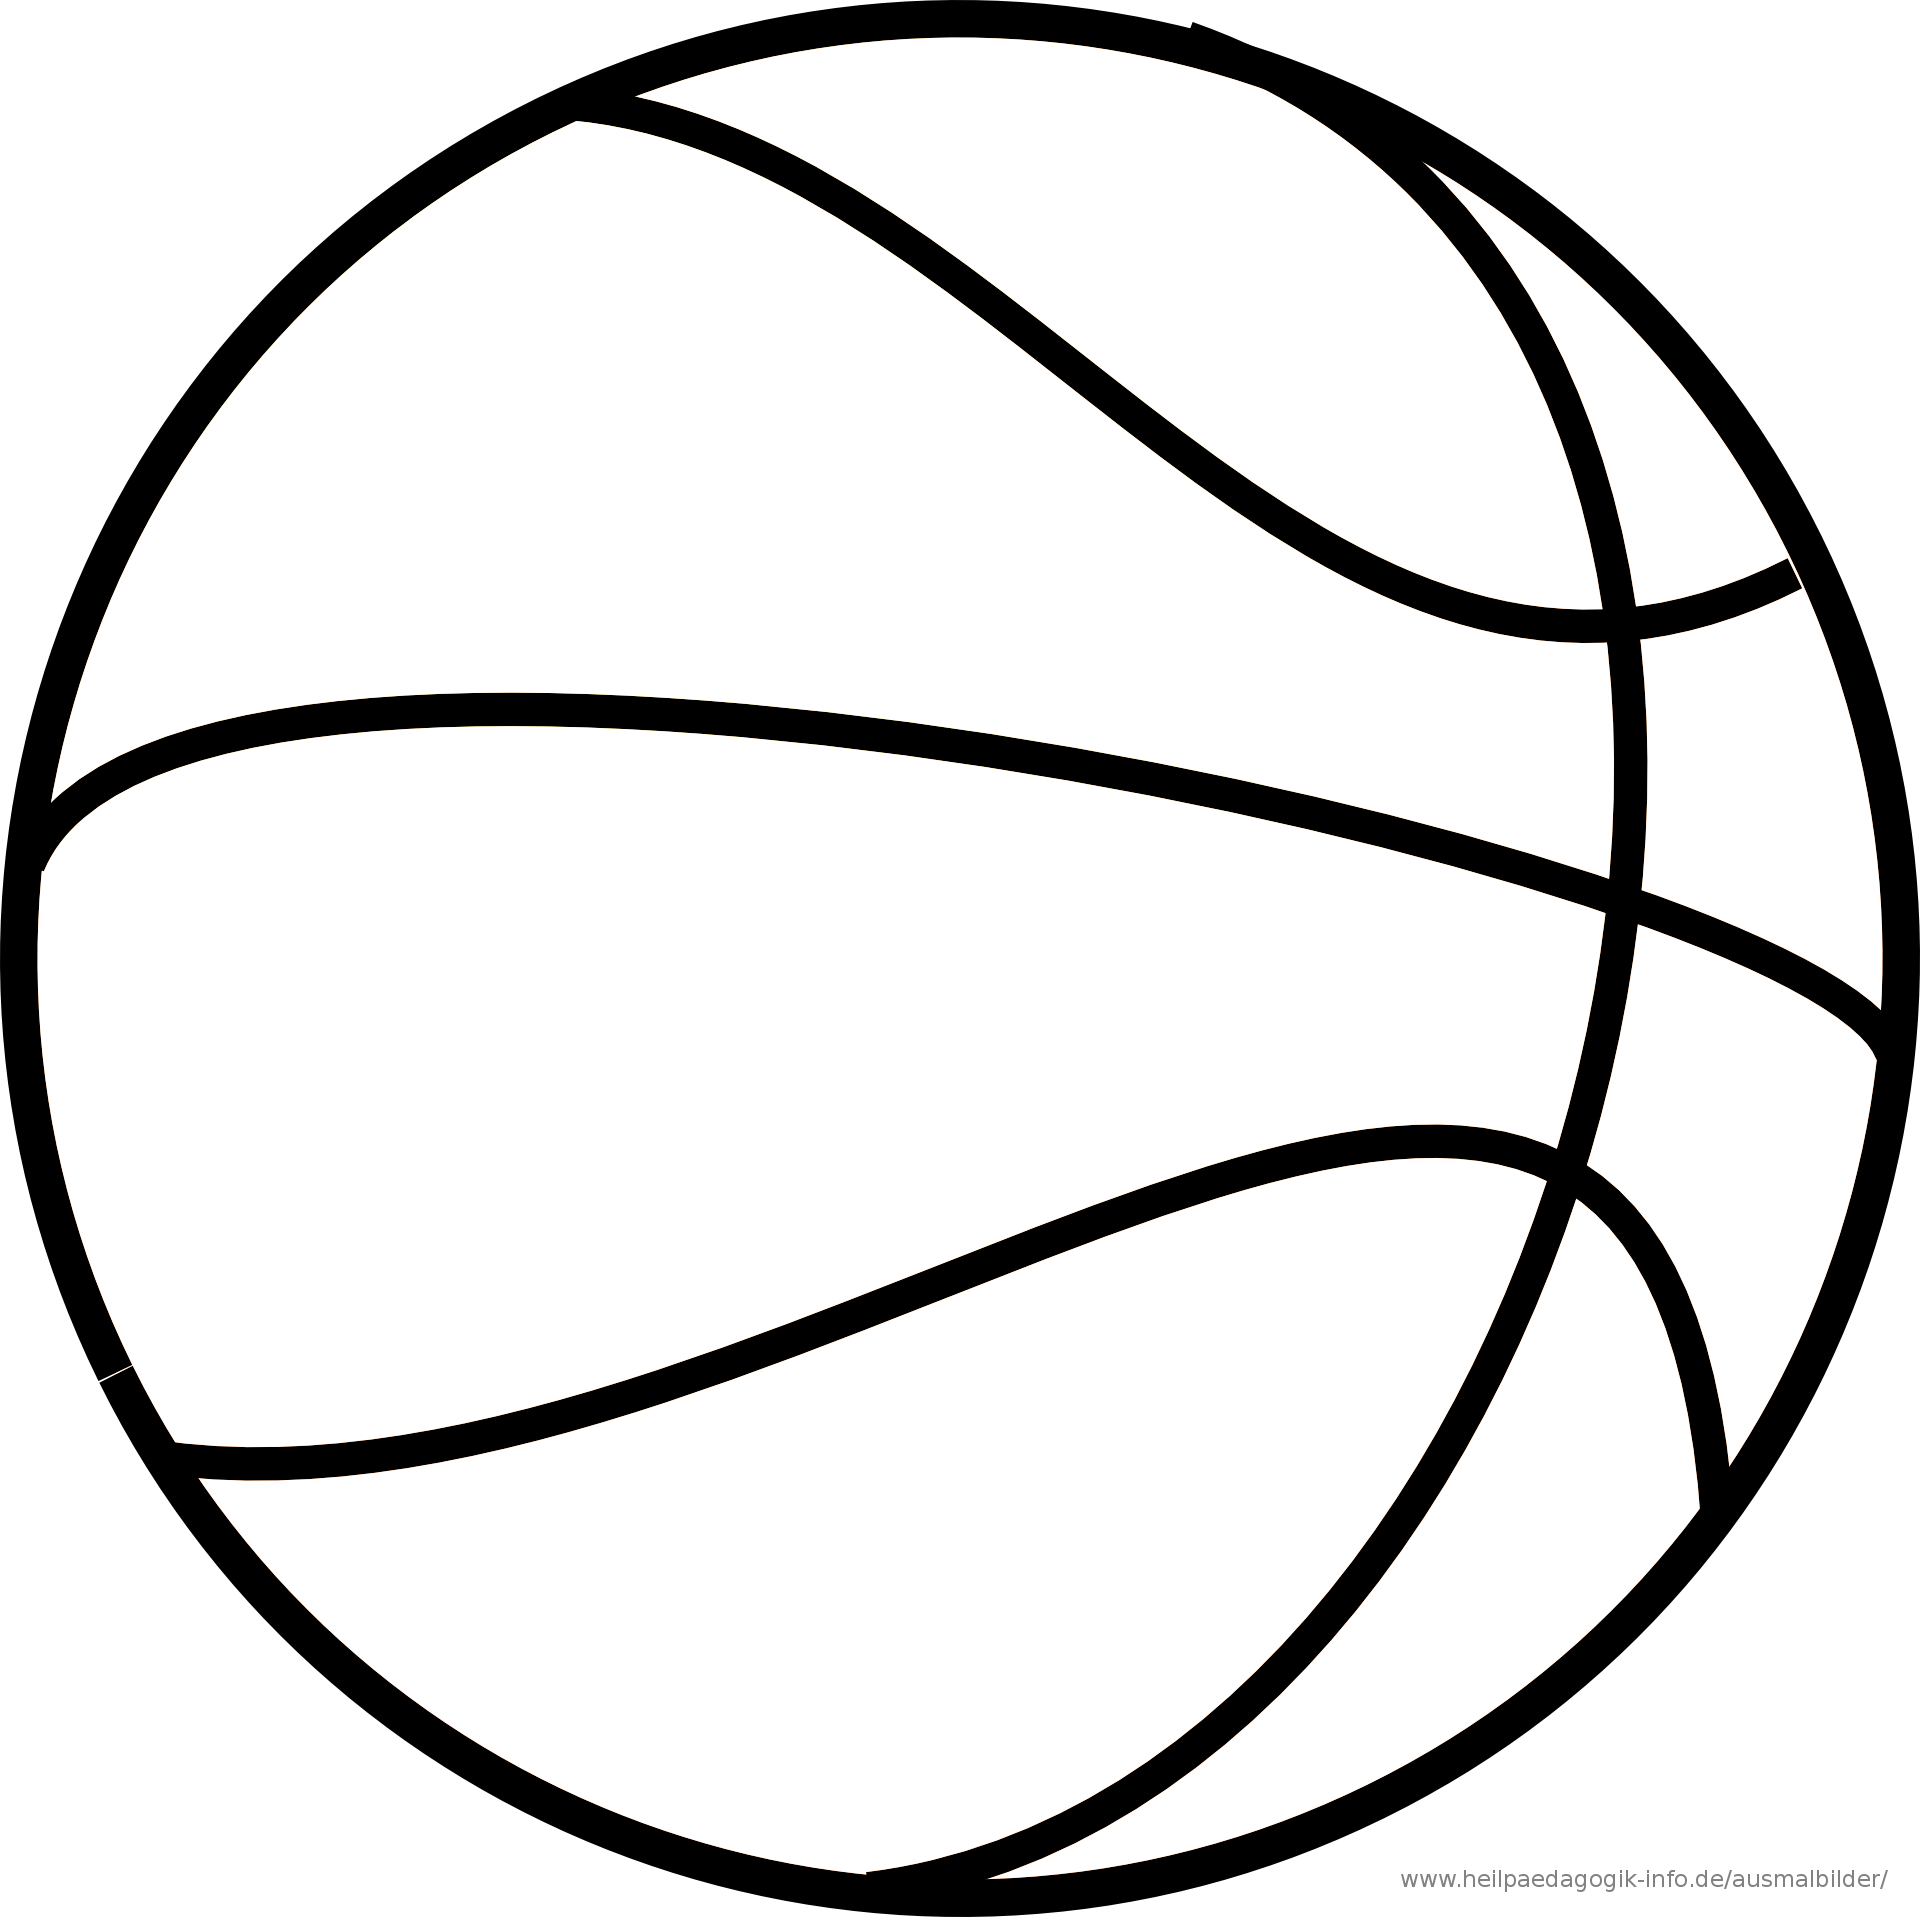 Basketball Clip Art Black And White cakepins.com.